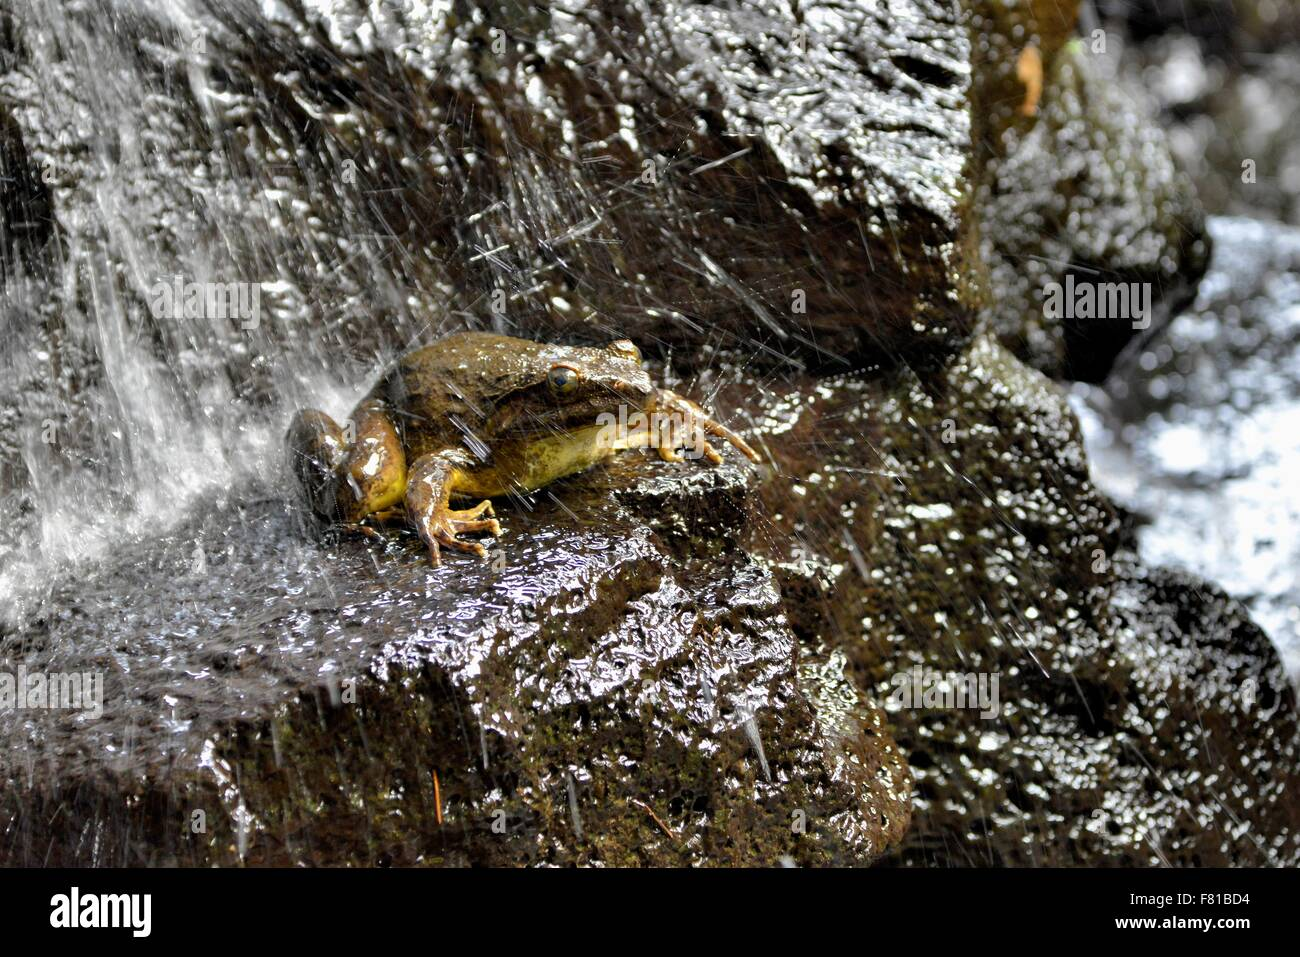 Goliath frog (Conraua goliath) under a waterfall, largest frog in the world, Mangamba in Nkongsamba, Littoral Province, - Stock Image